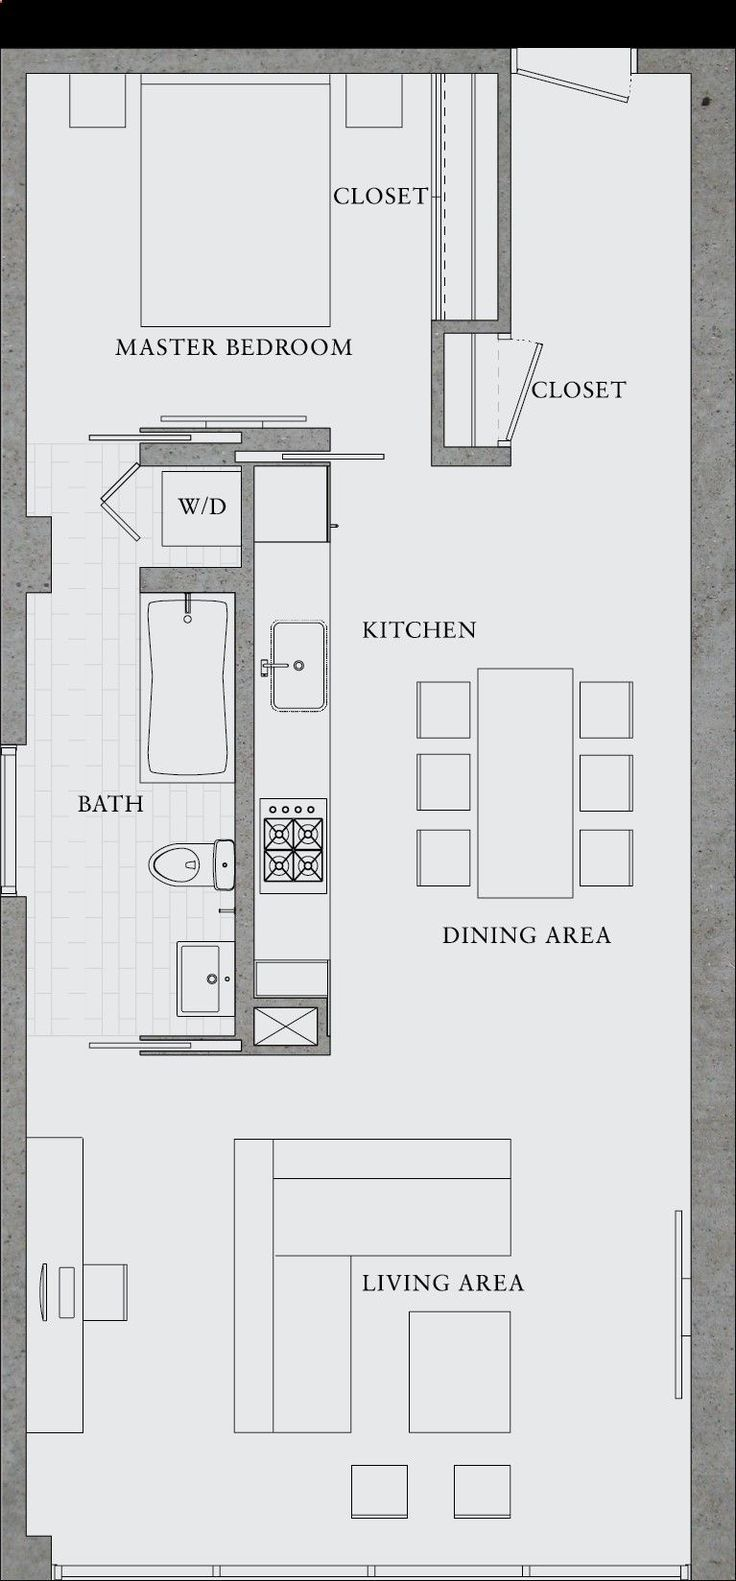 Container Homes Plans - Container House - 8 Octavia | 403 - Who Else Wants Simple Step-By-Step Plans To Design And Build A Container Home From Scratch? Who Else Wants Simple Step-By-Step Plans To Design And Build A Container Home From Scratch? #containerhomeplans